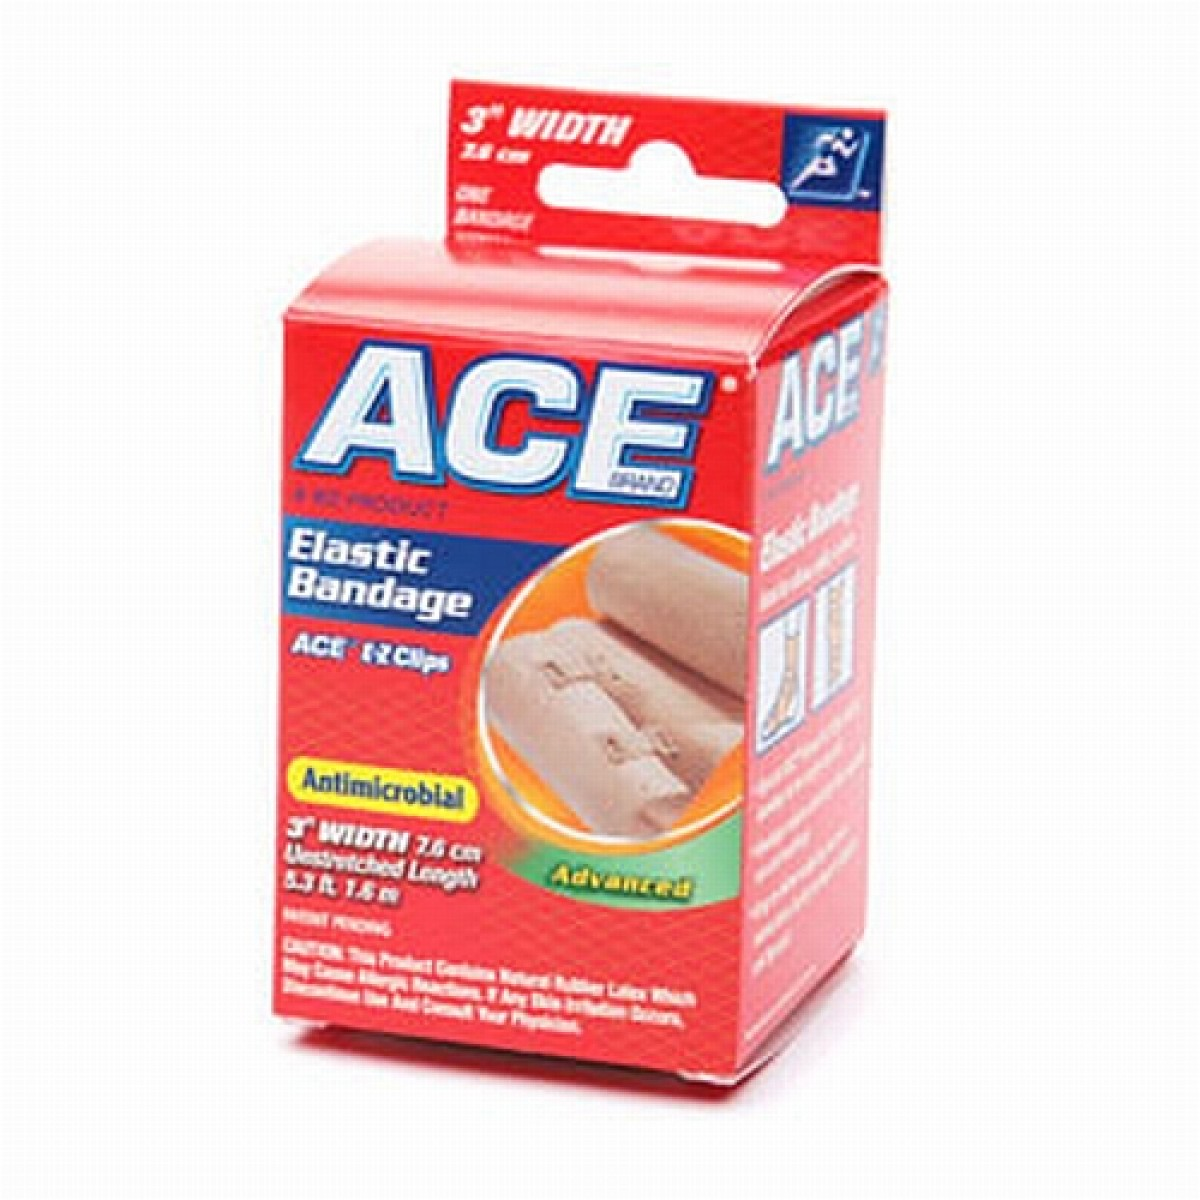 ace bandage products